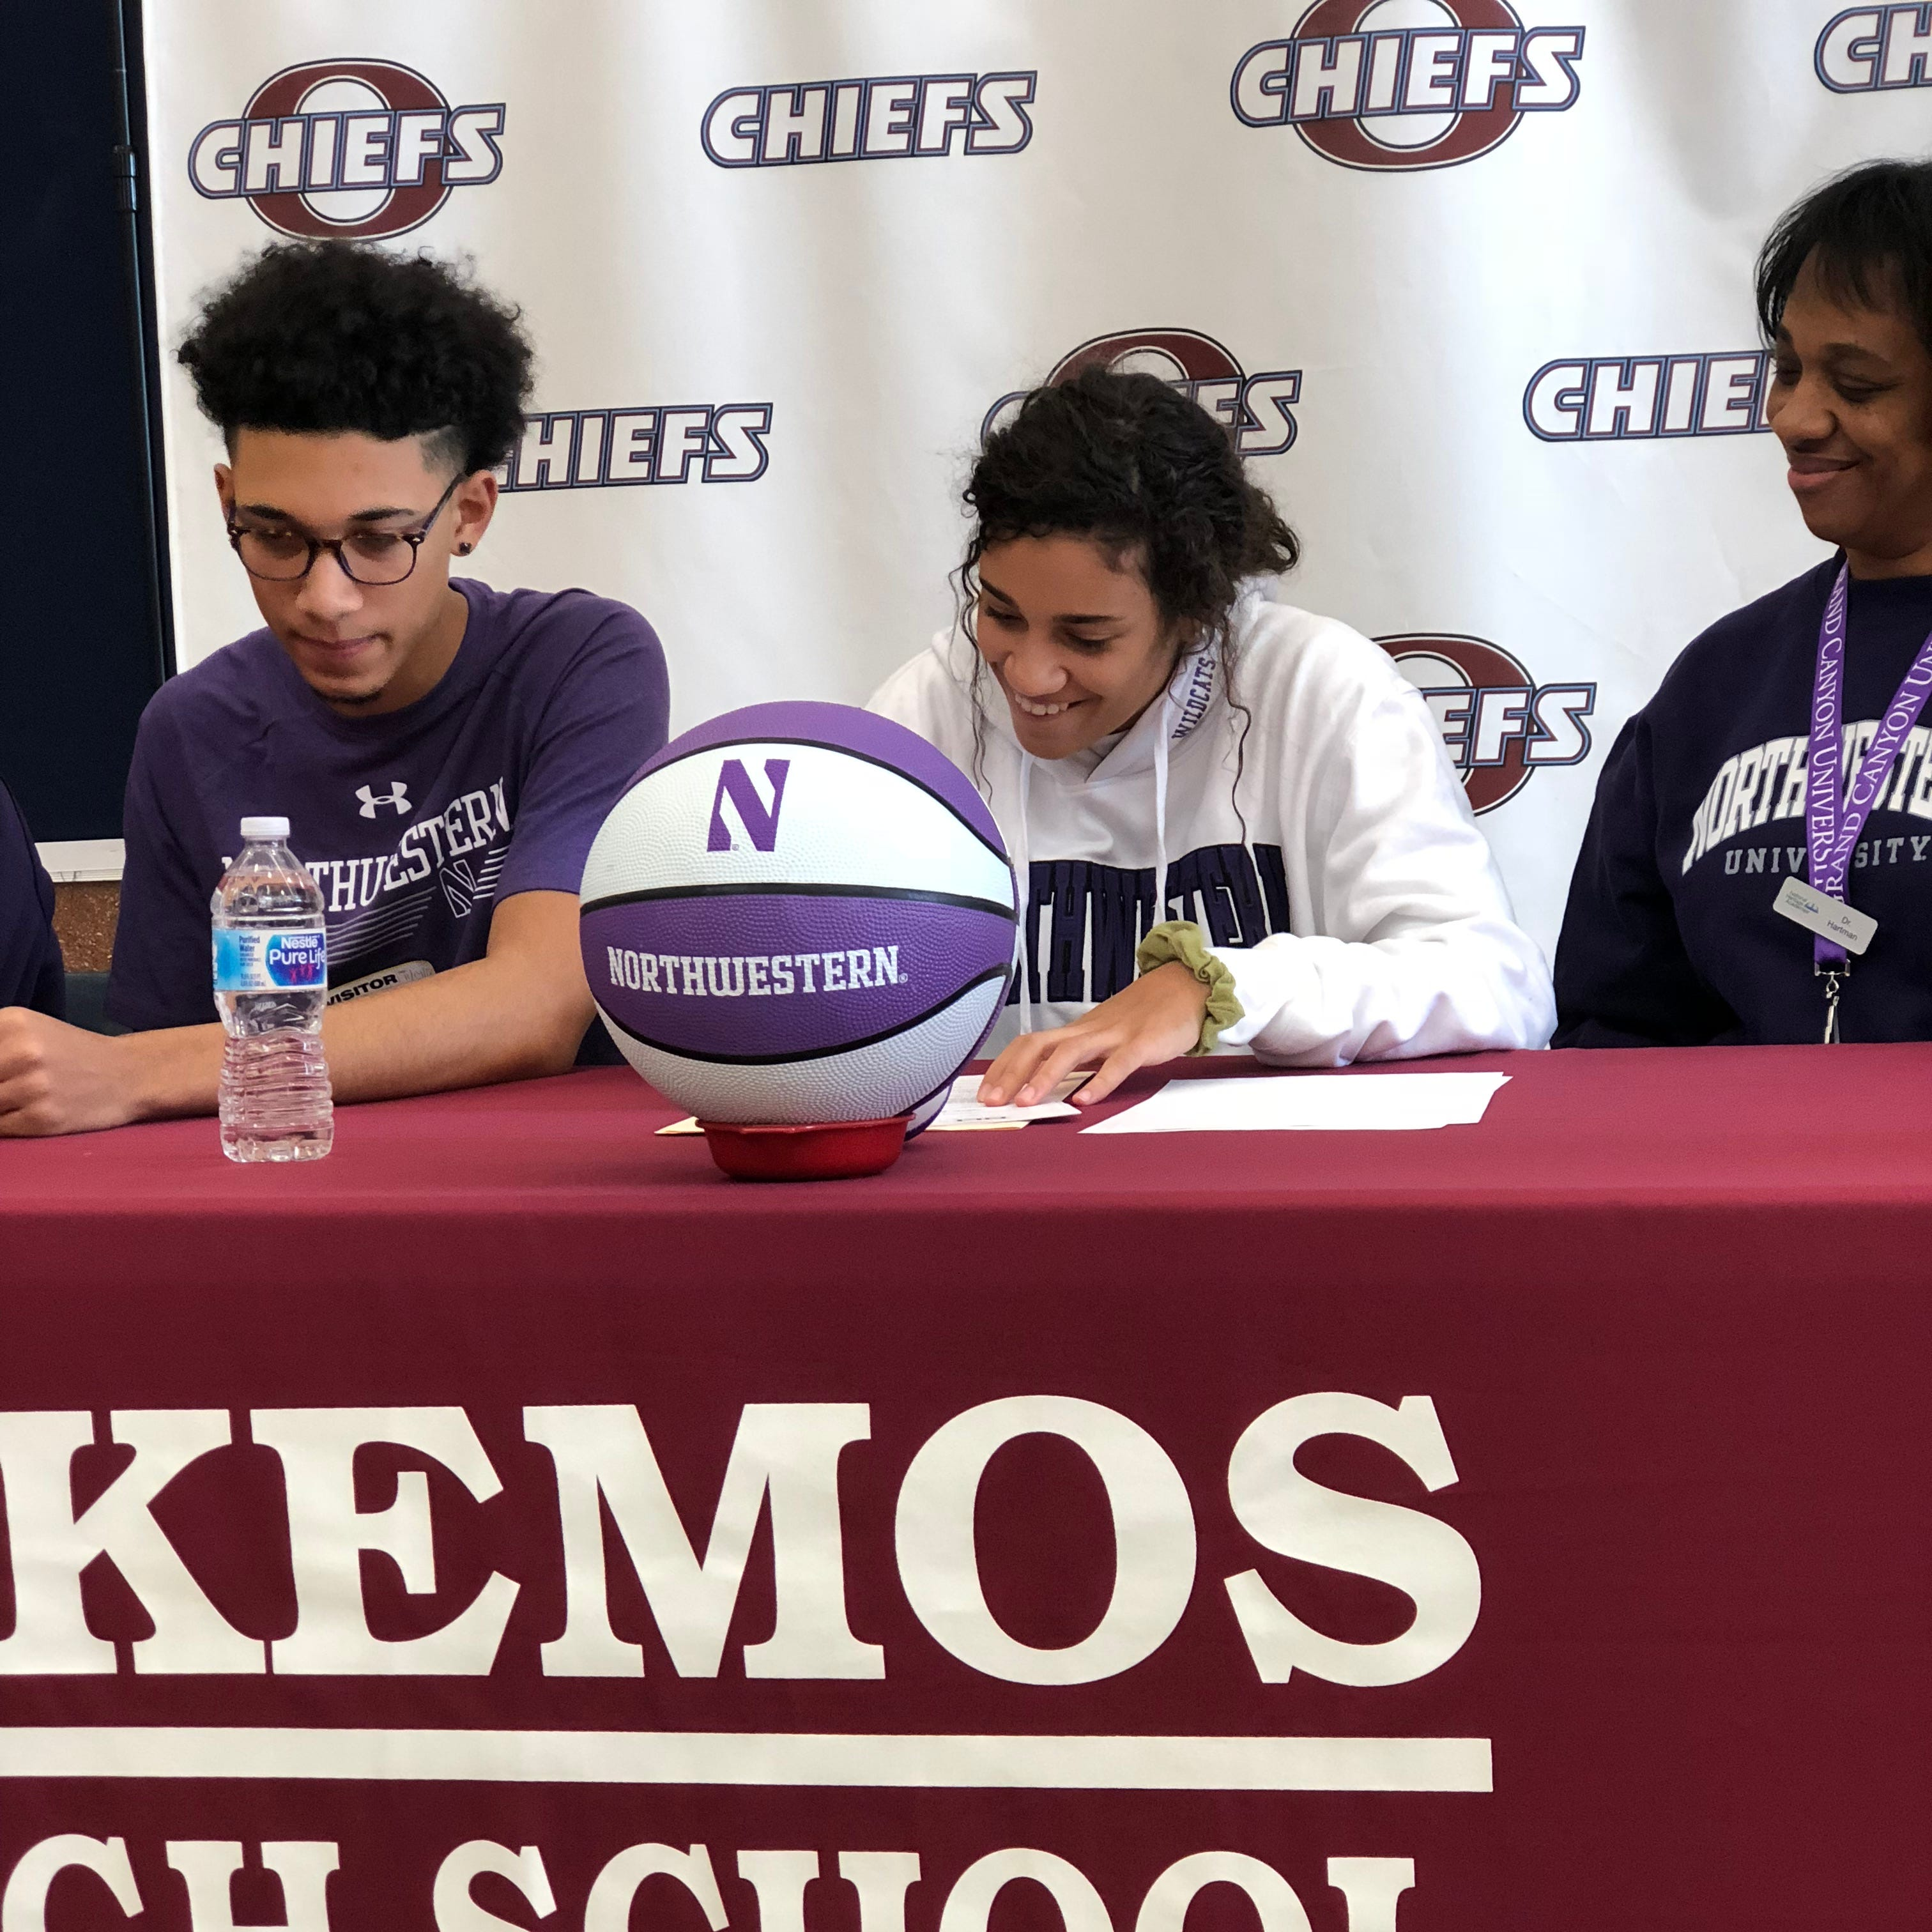 With her brother and mother looking on, Okemos senior Laya Hartman, center, signs her letter of intent to play basketball at Northwestern. Hartman was among several Lansing area athletes that signed with schools on Wednesday.